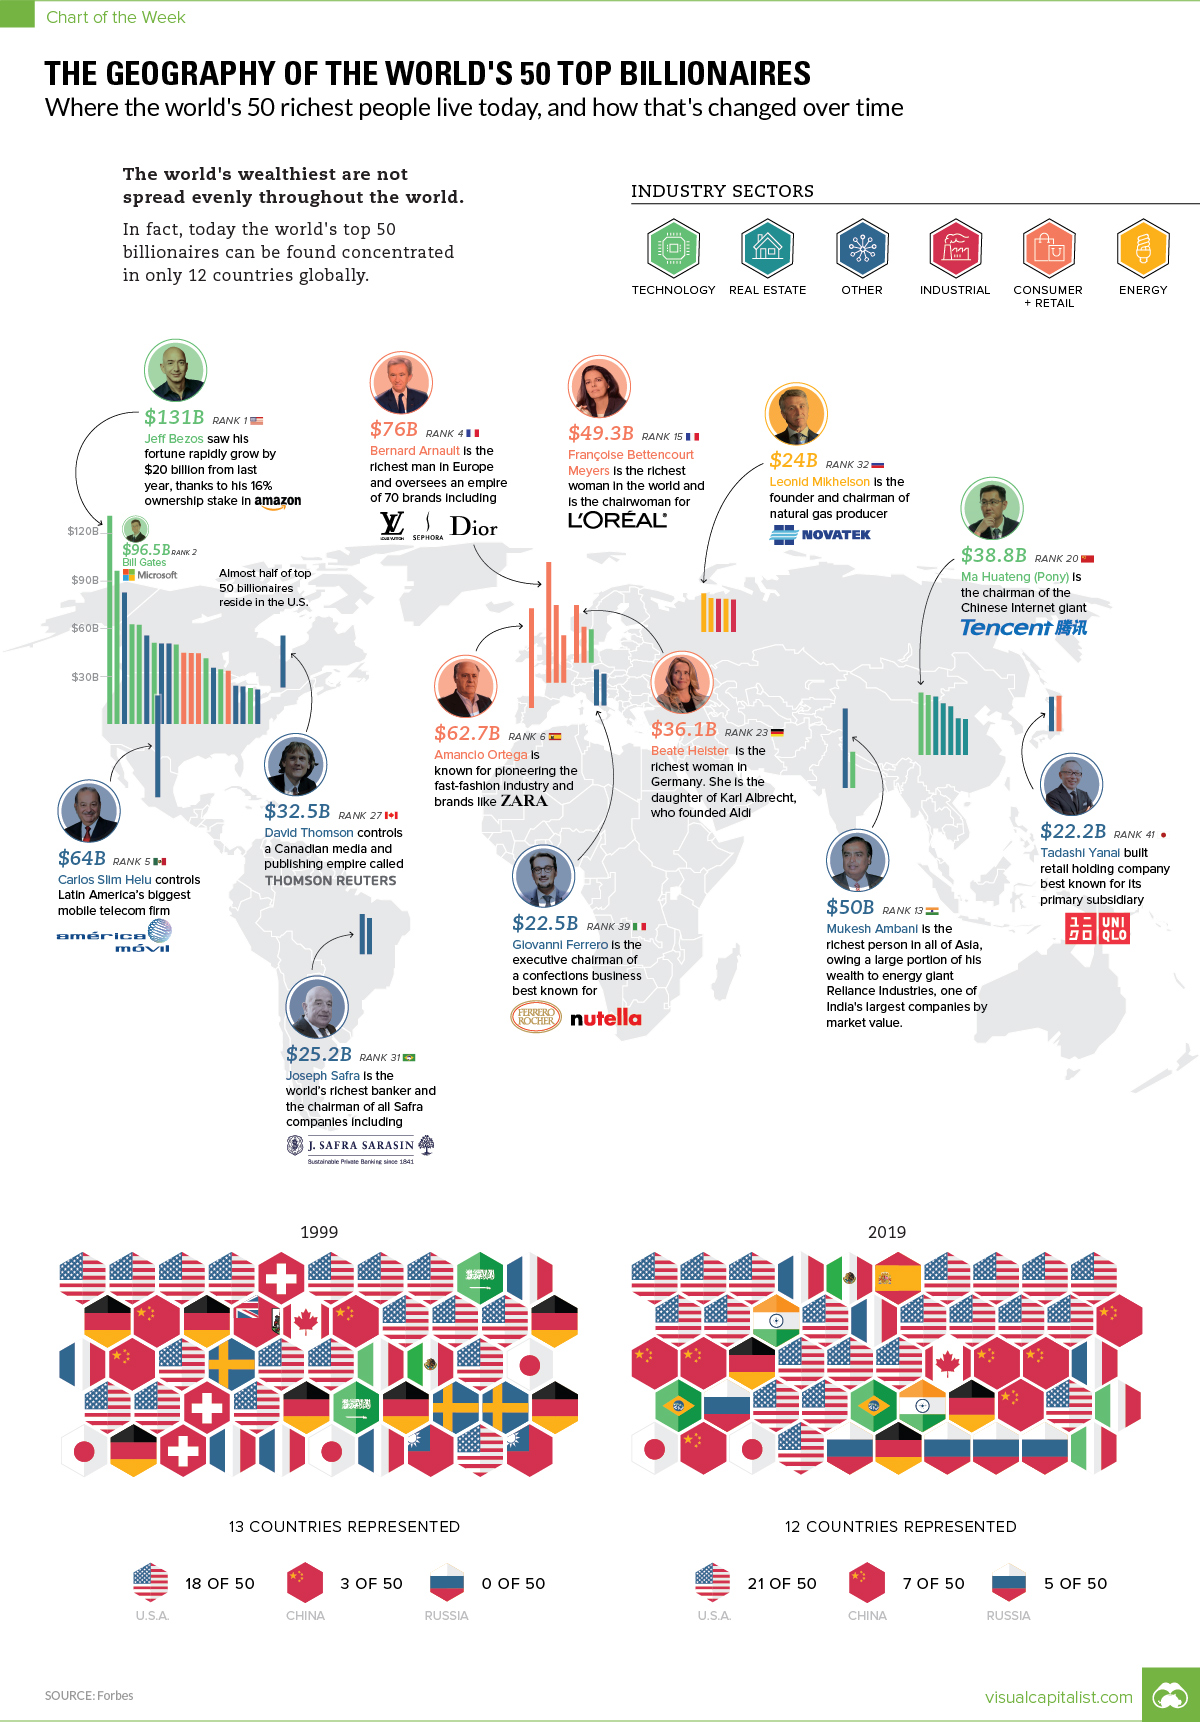 50 Top Billionaires by Geography